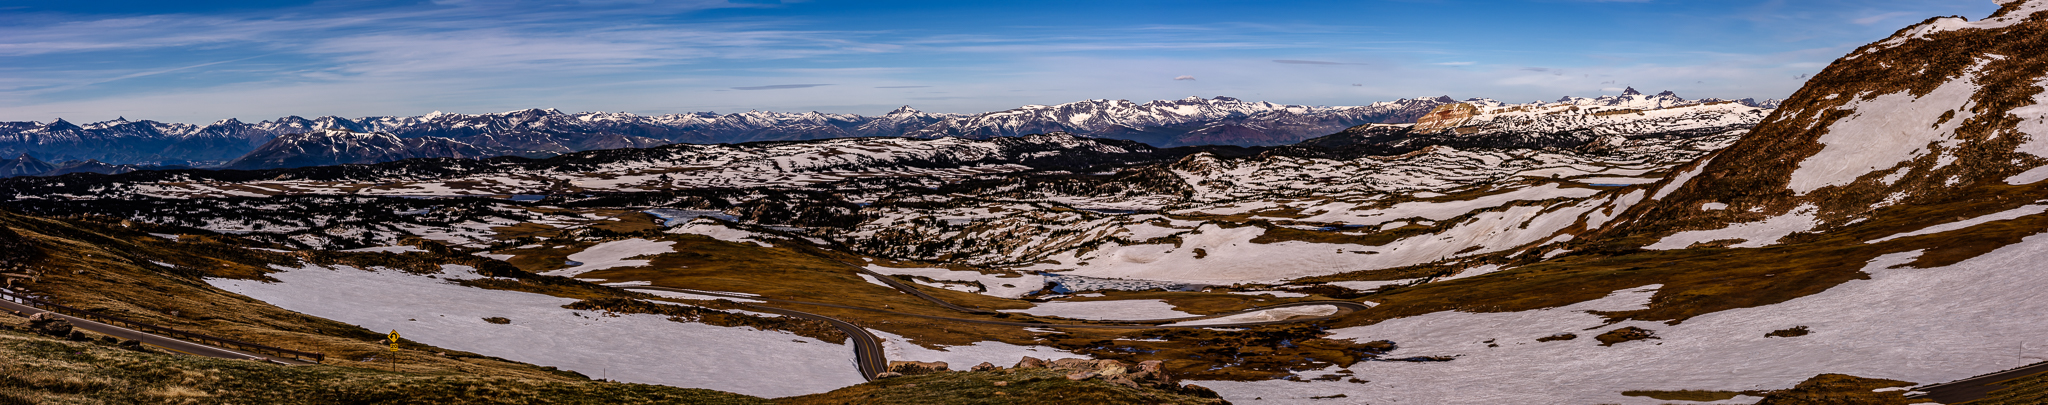 Beartooth Highway, MT